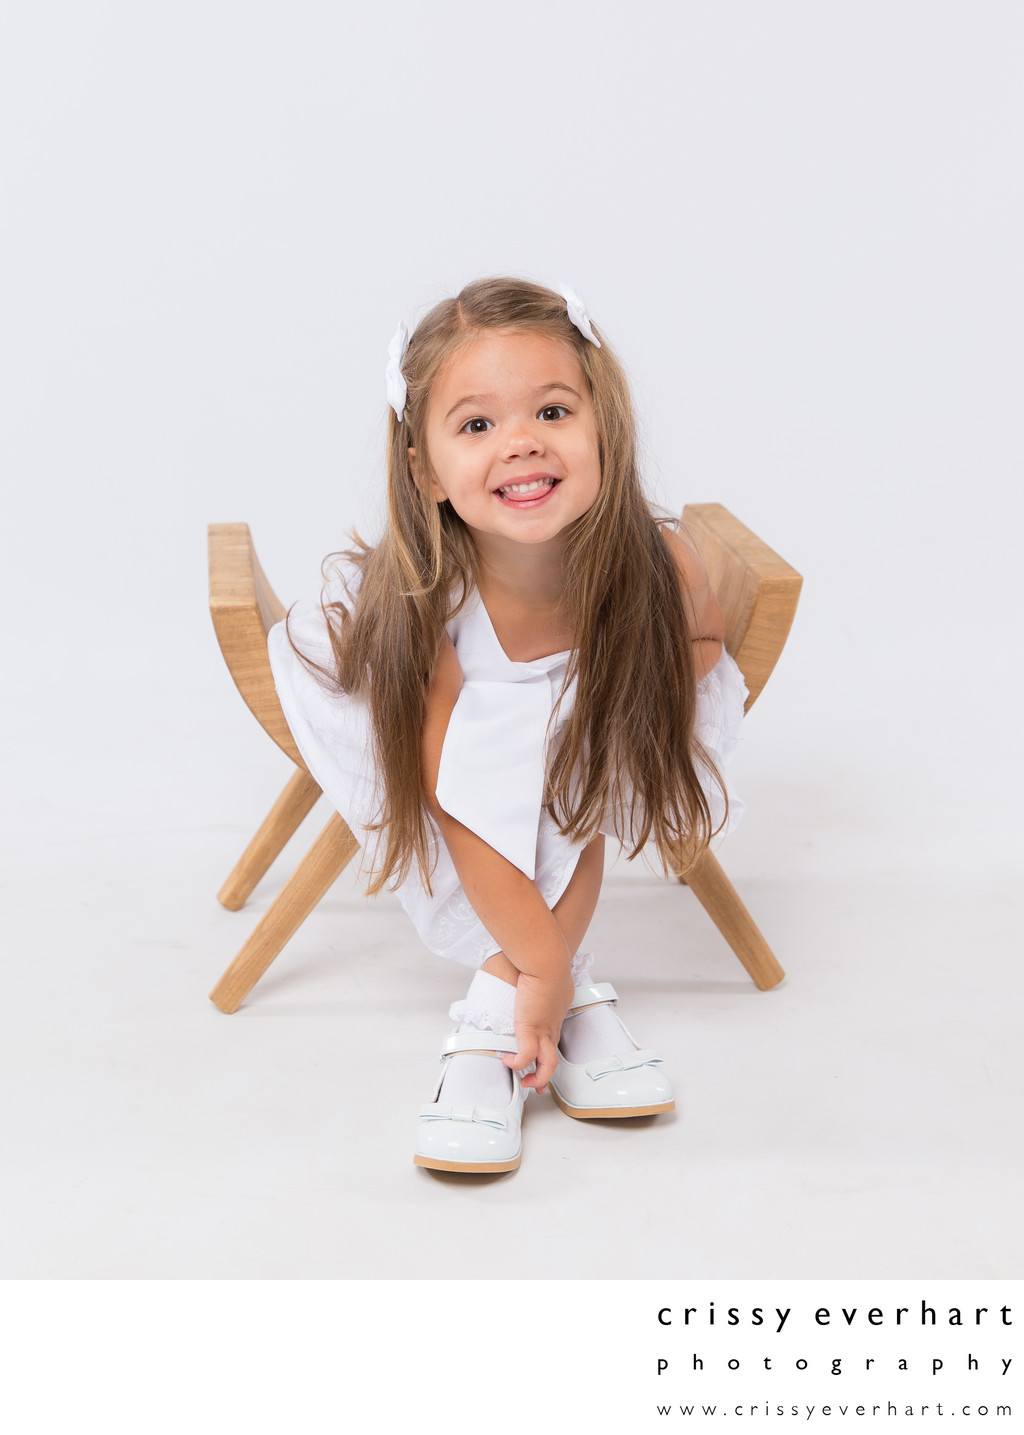 Portraits with Personality - Photo Studio in Malvern